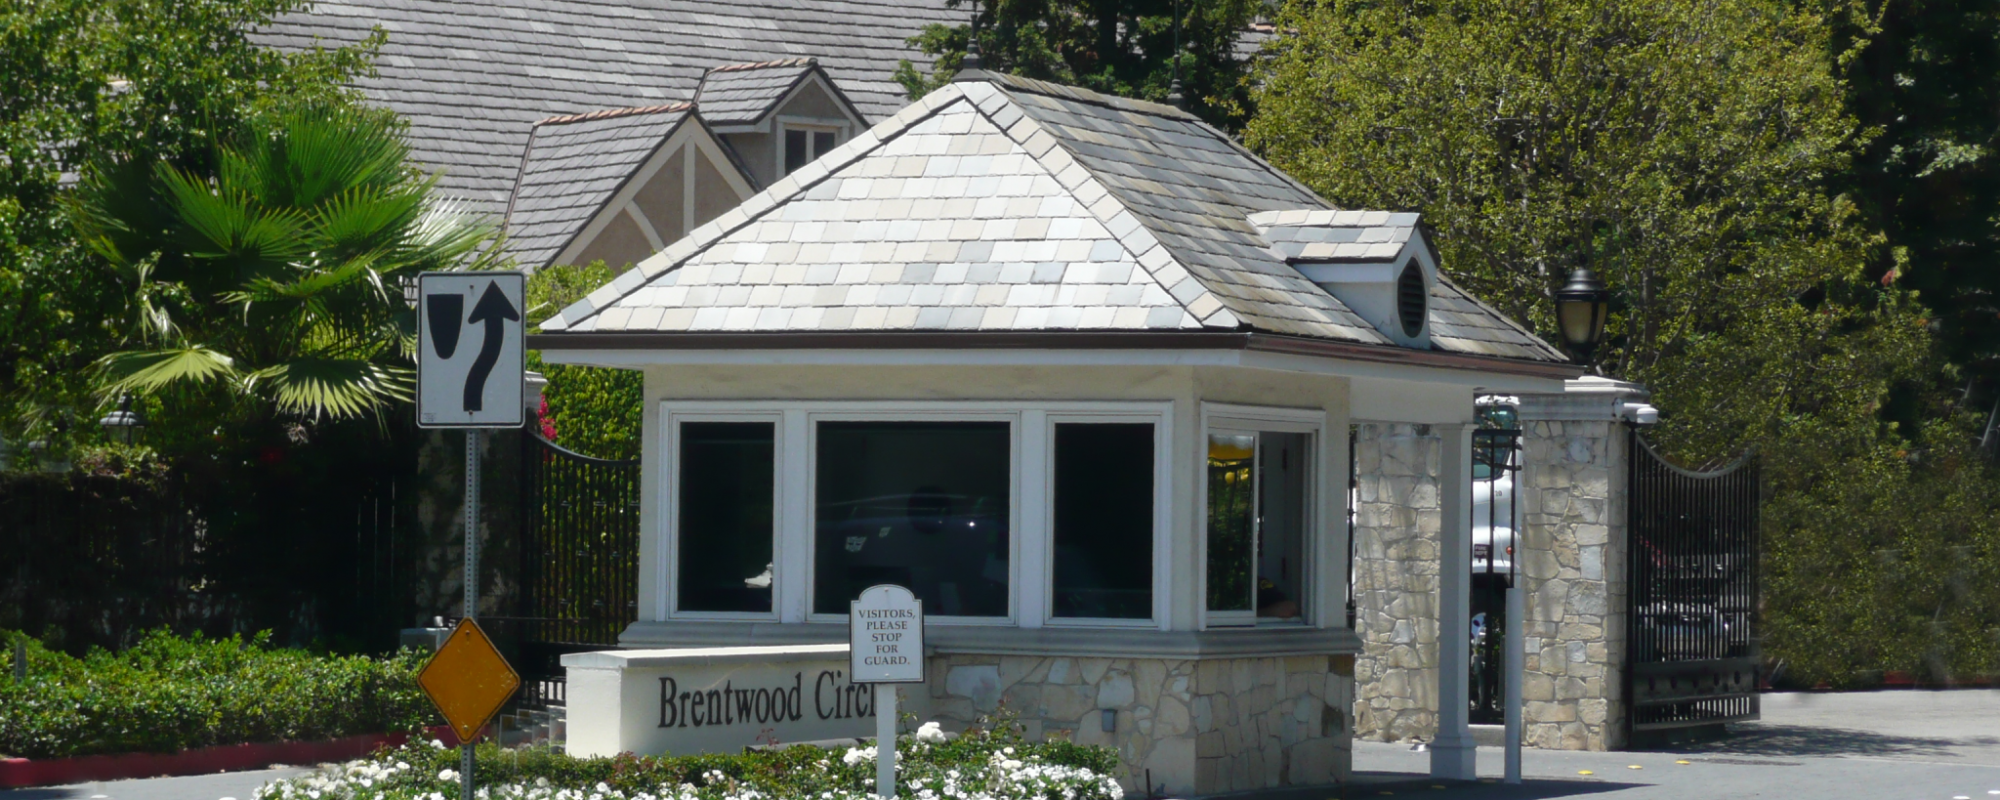 Brentwood_Circle